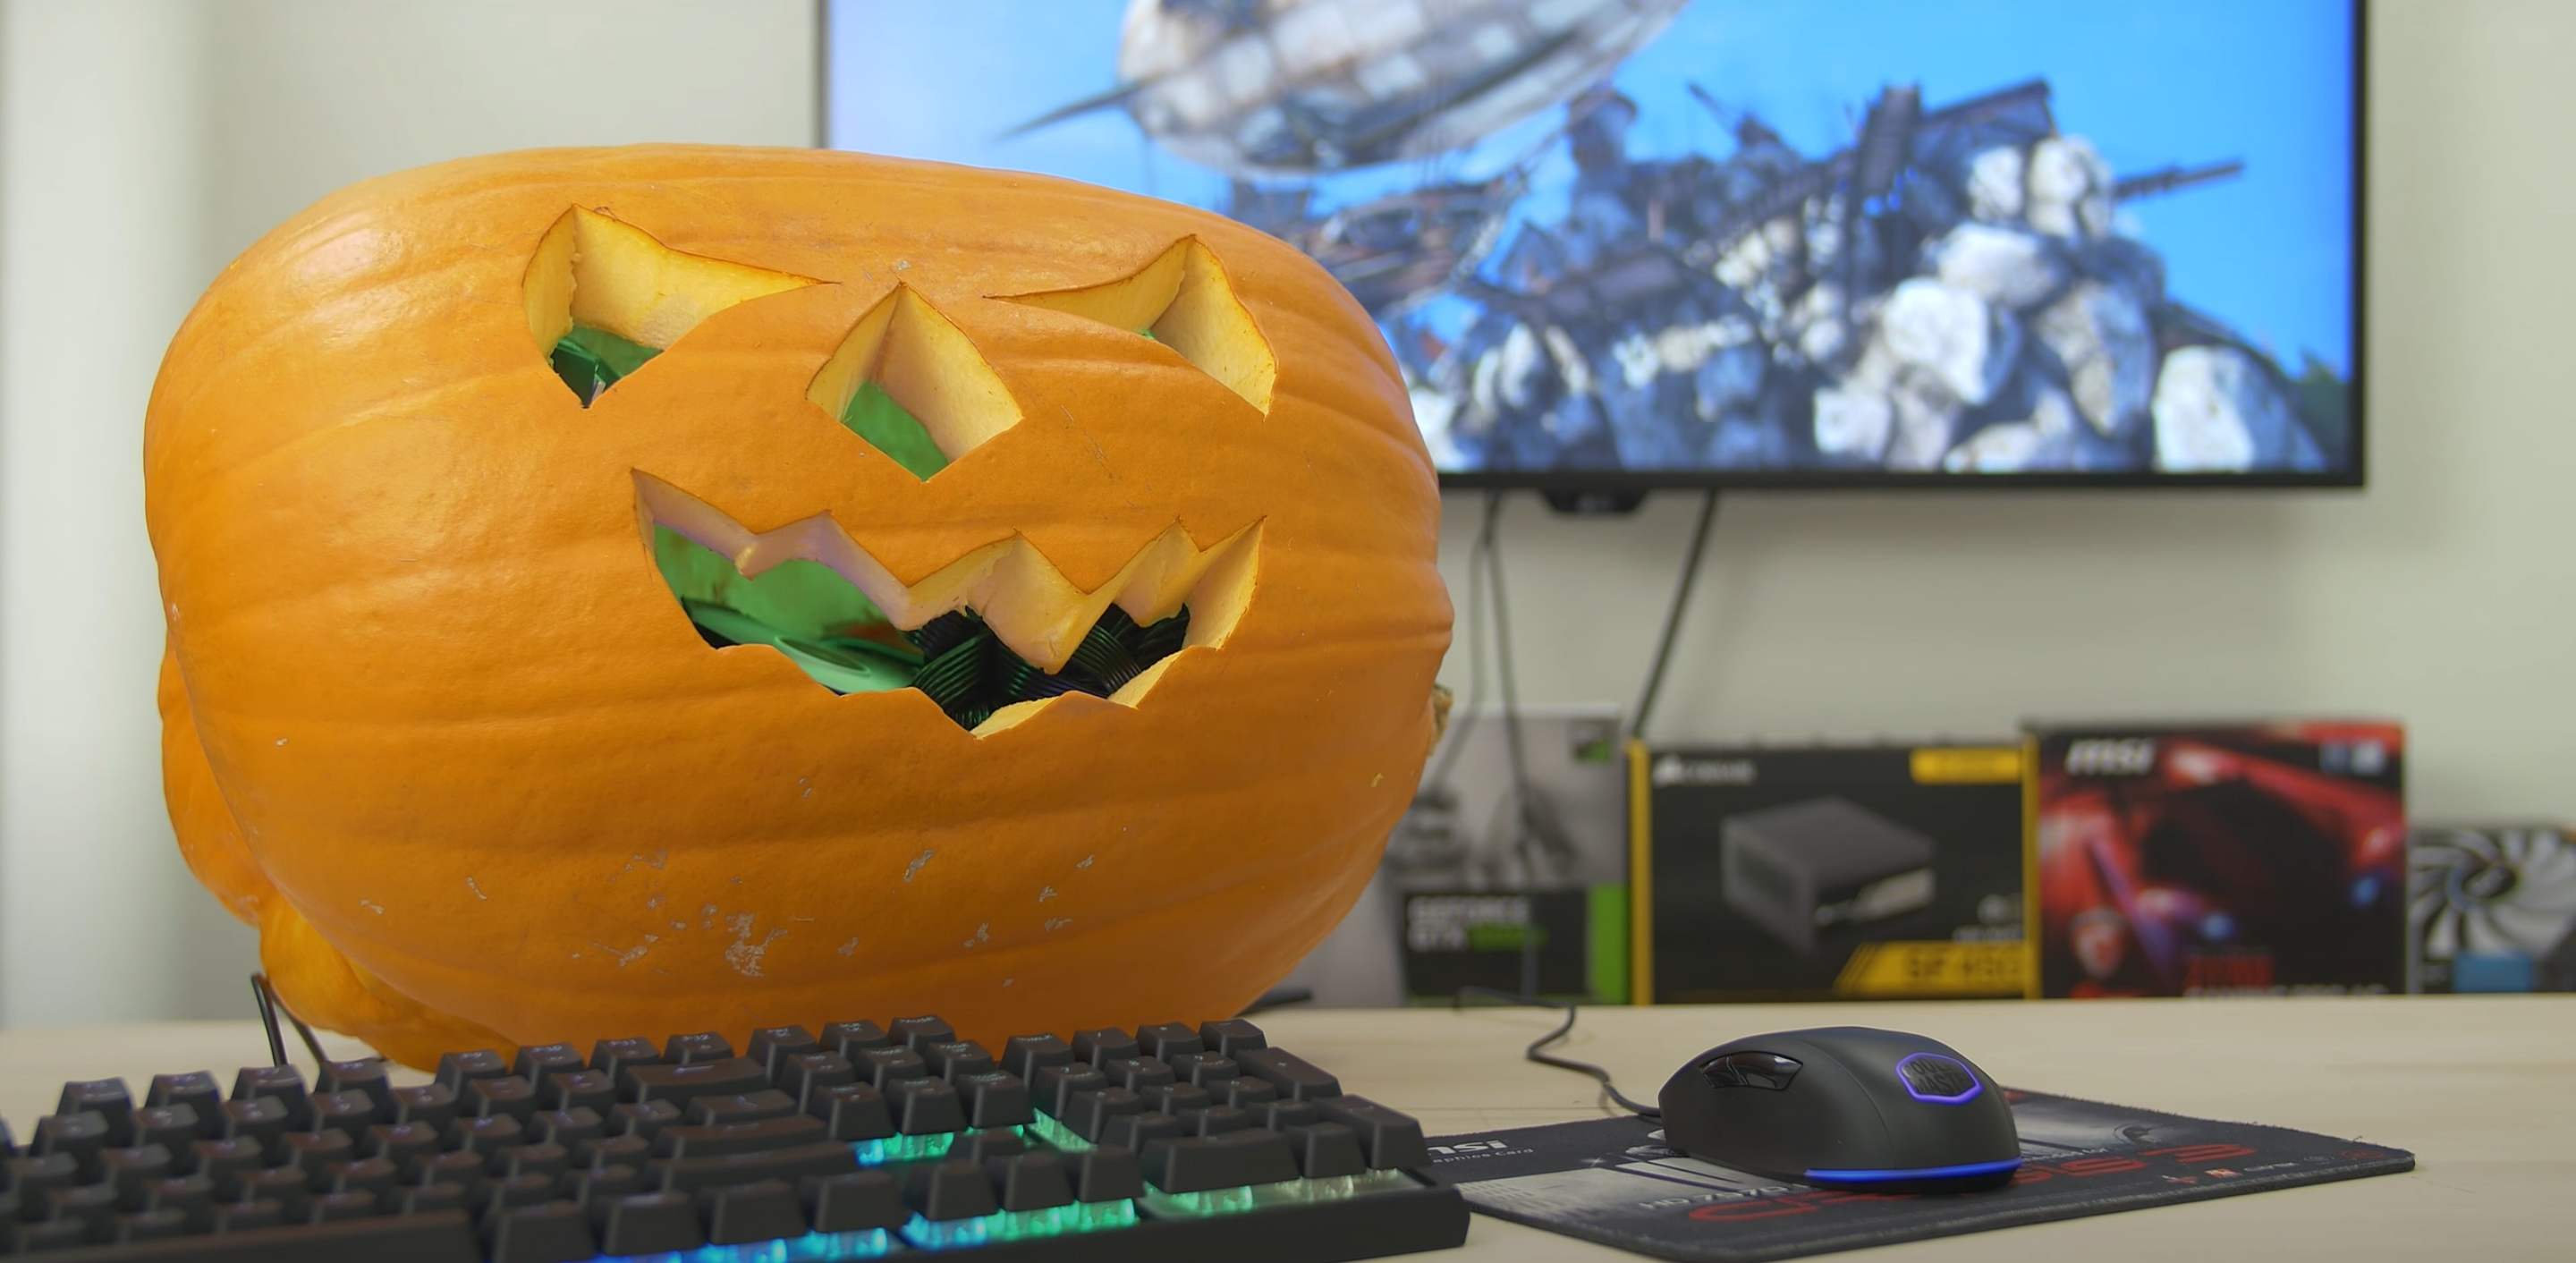 halloween pumpkin carving pc gaming computer setup